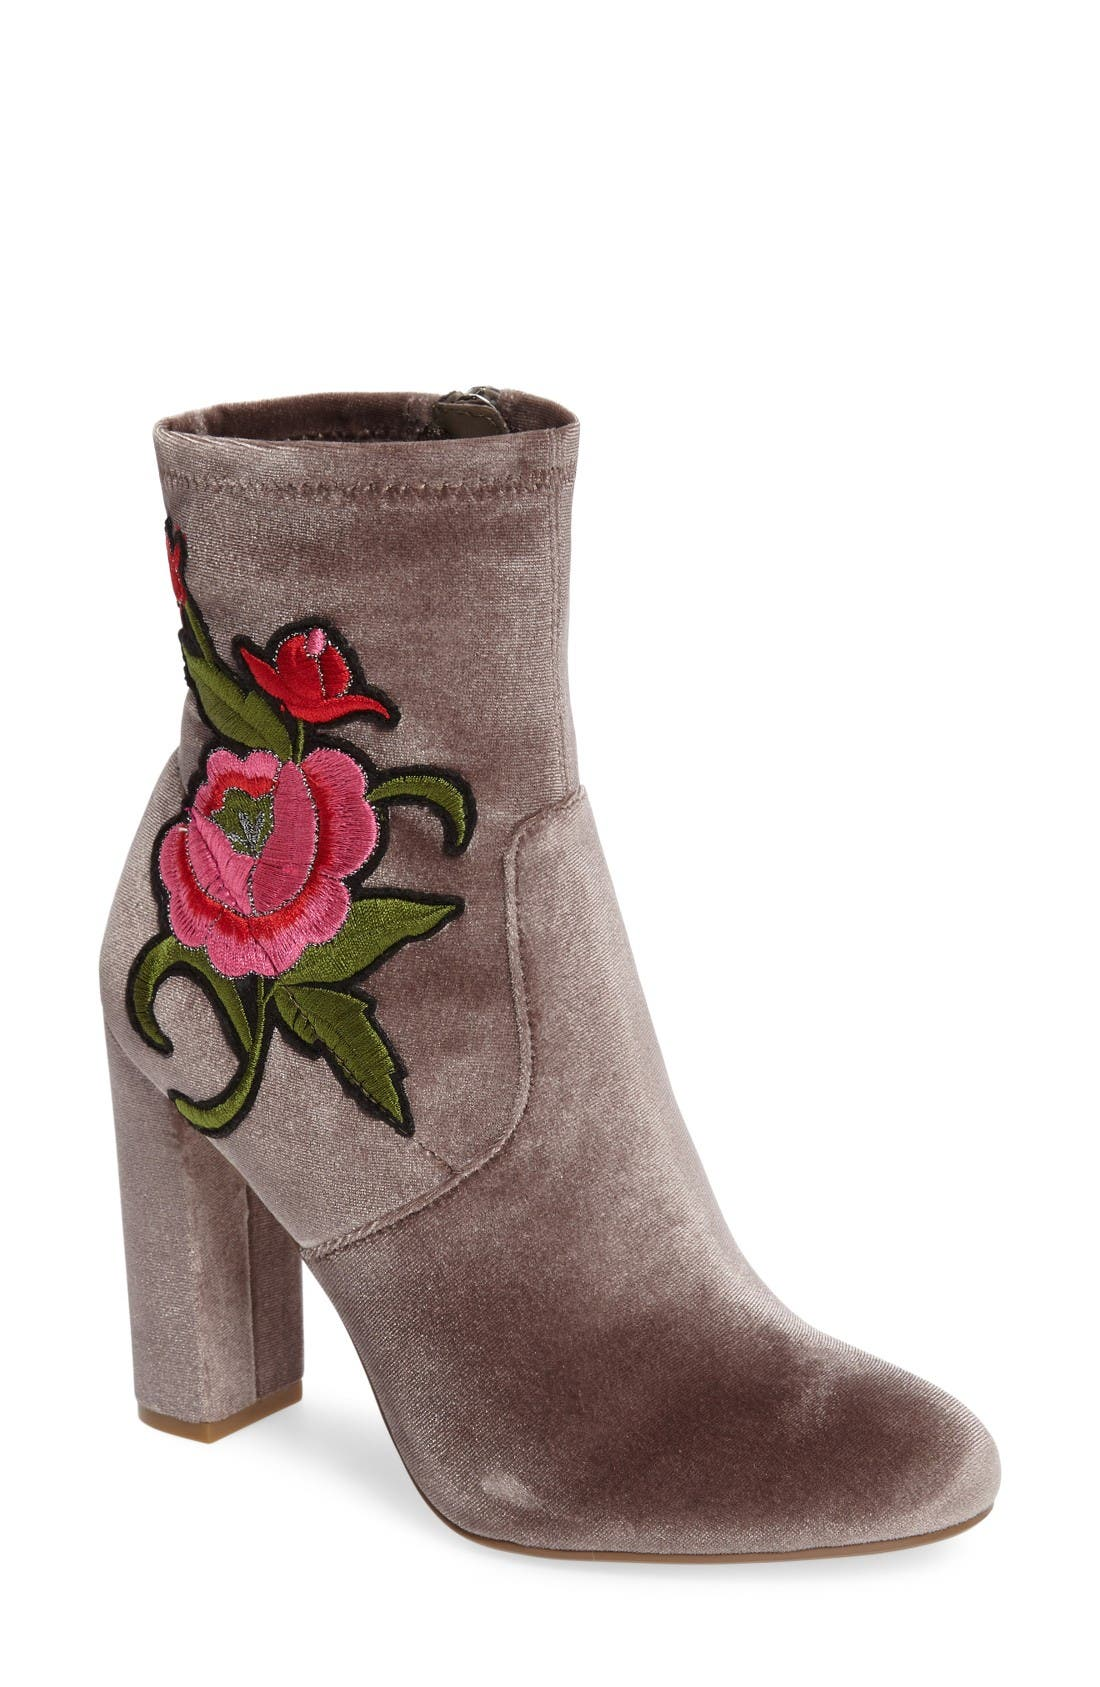 Main Image - Steve Madden Edition Embroidered Bootie (Women)